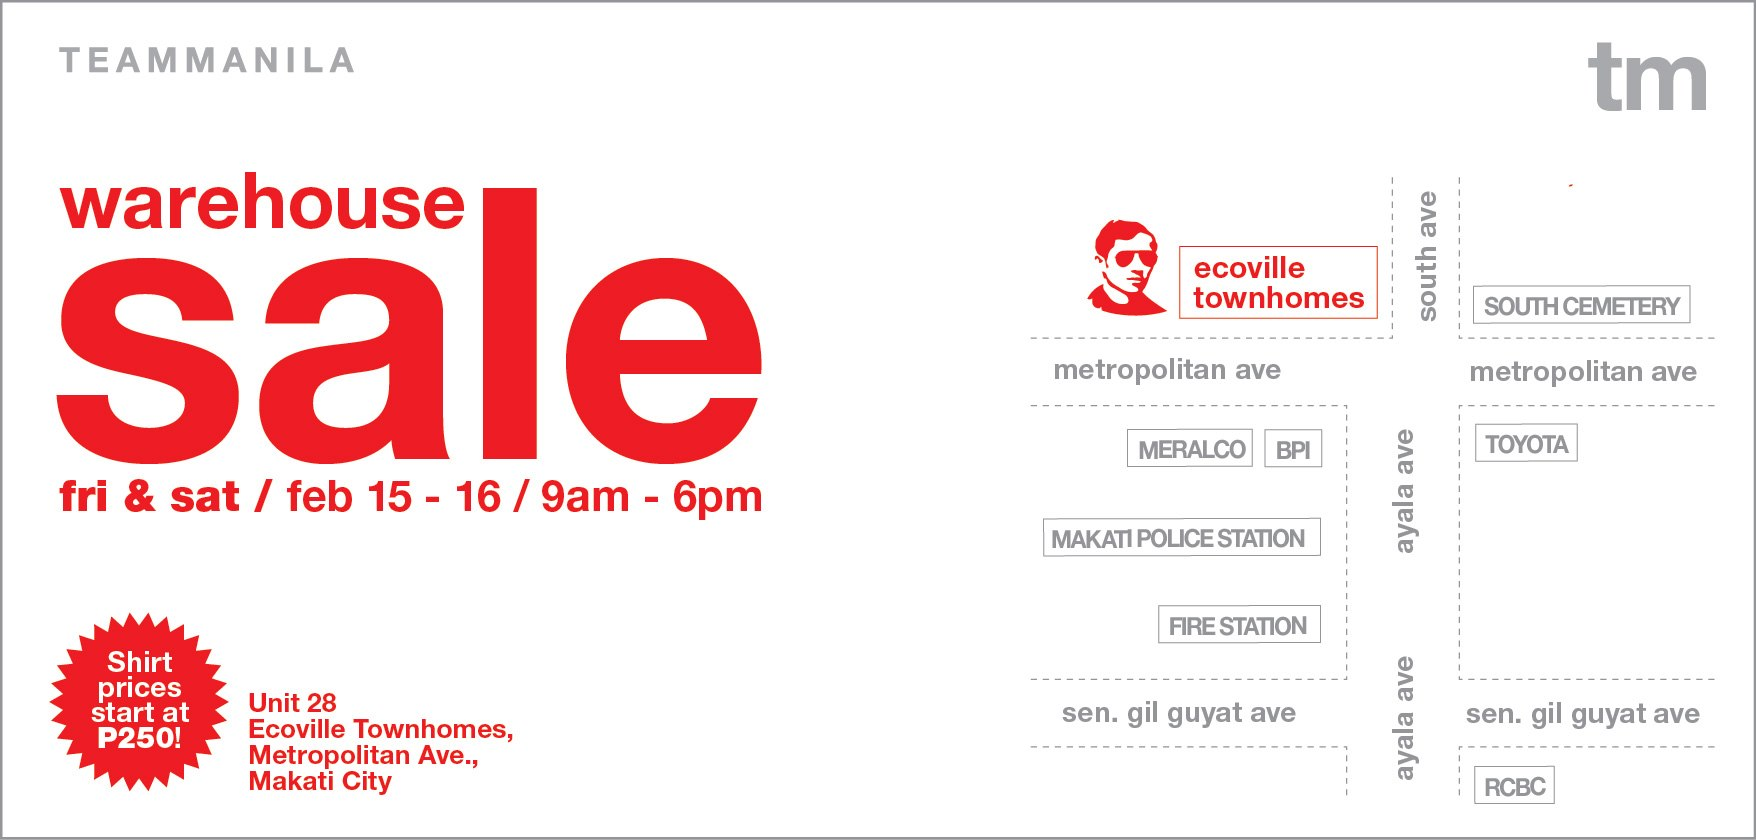 Team Manila Warehouse Sale February 2013